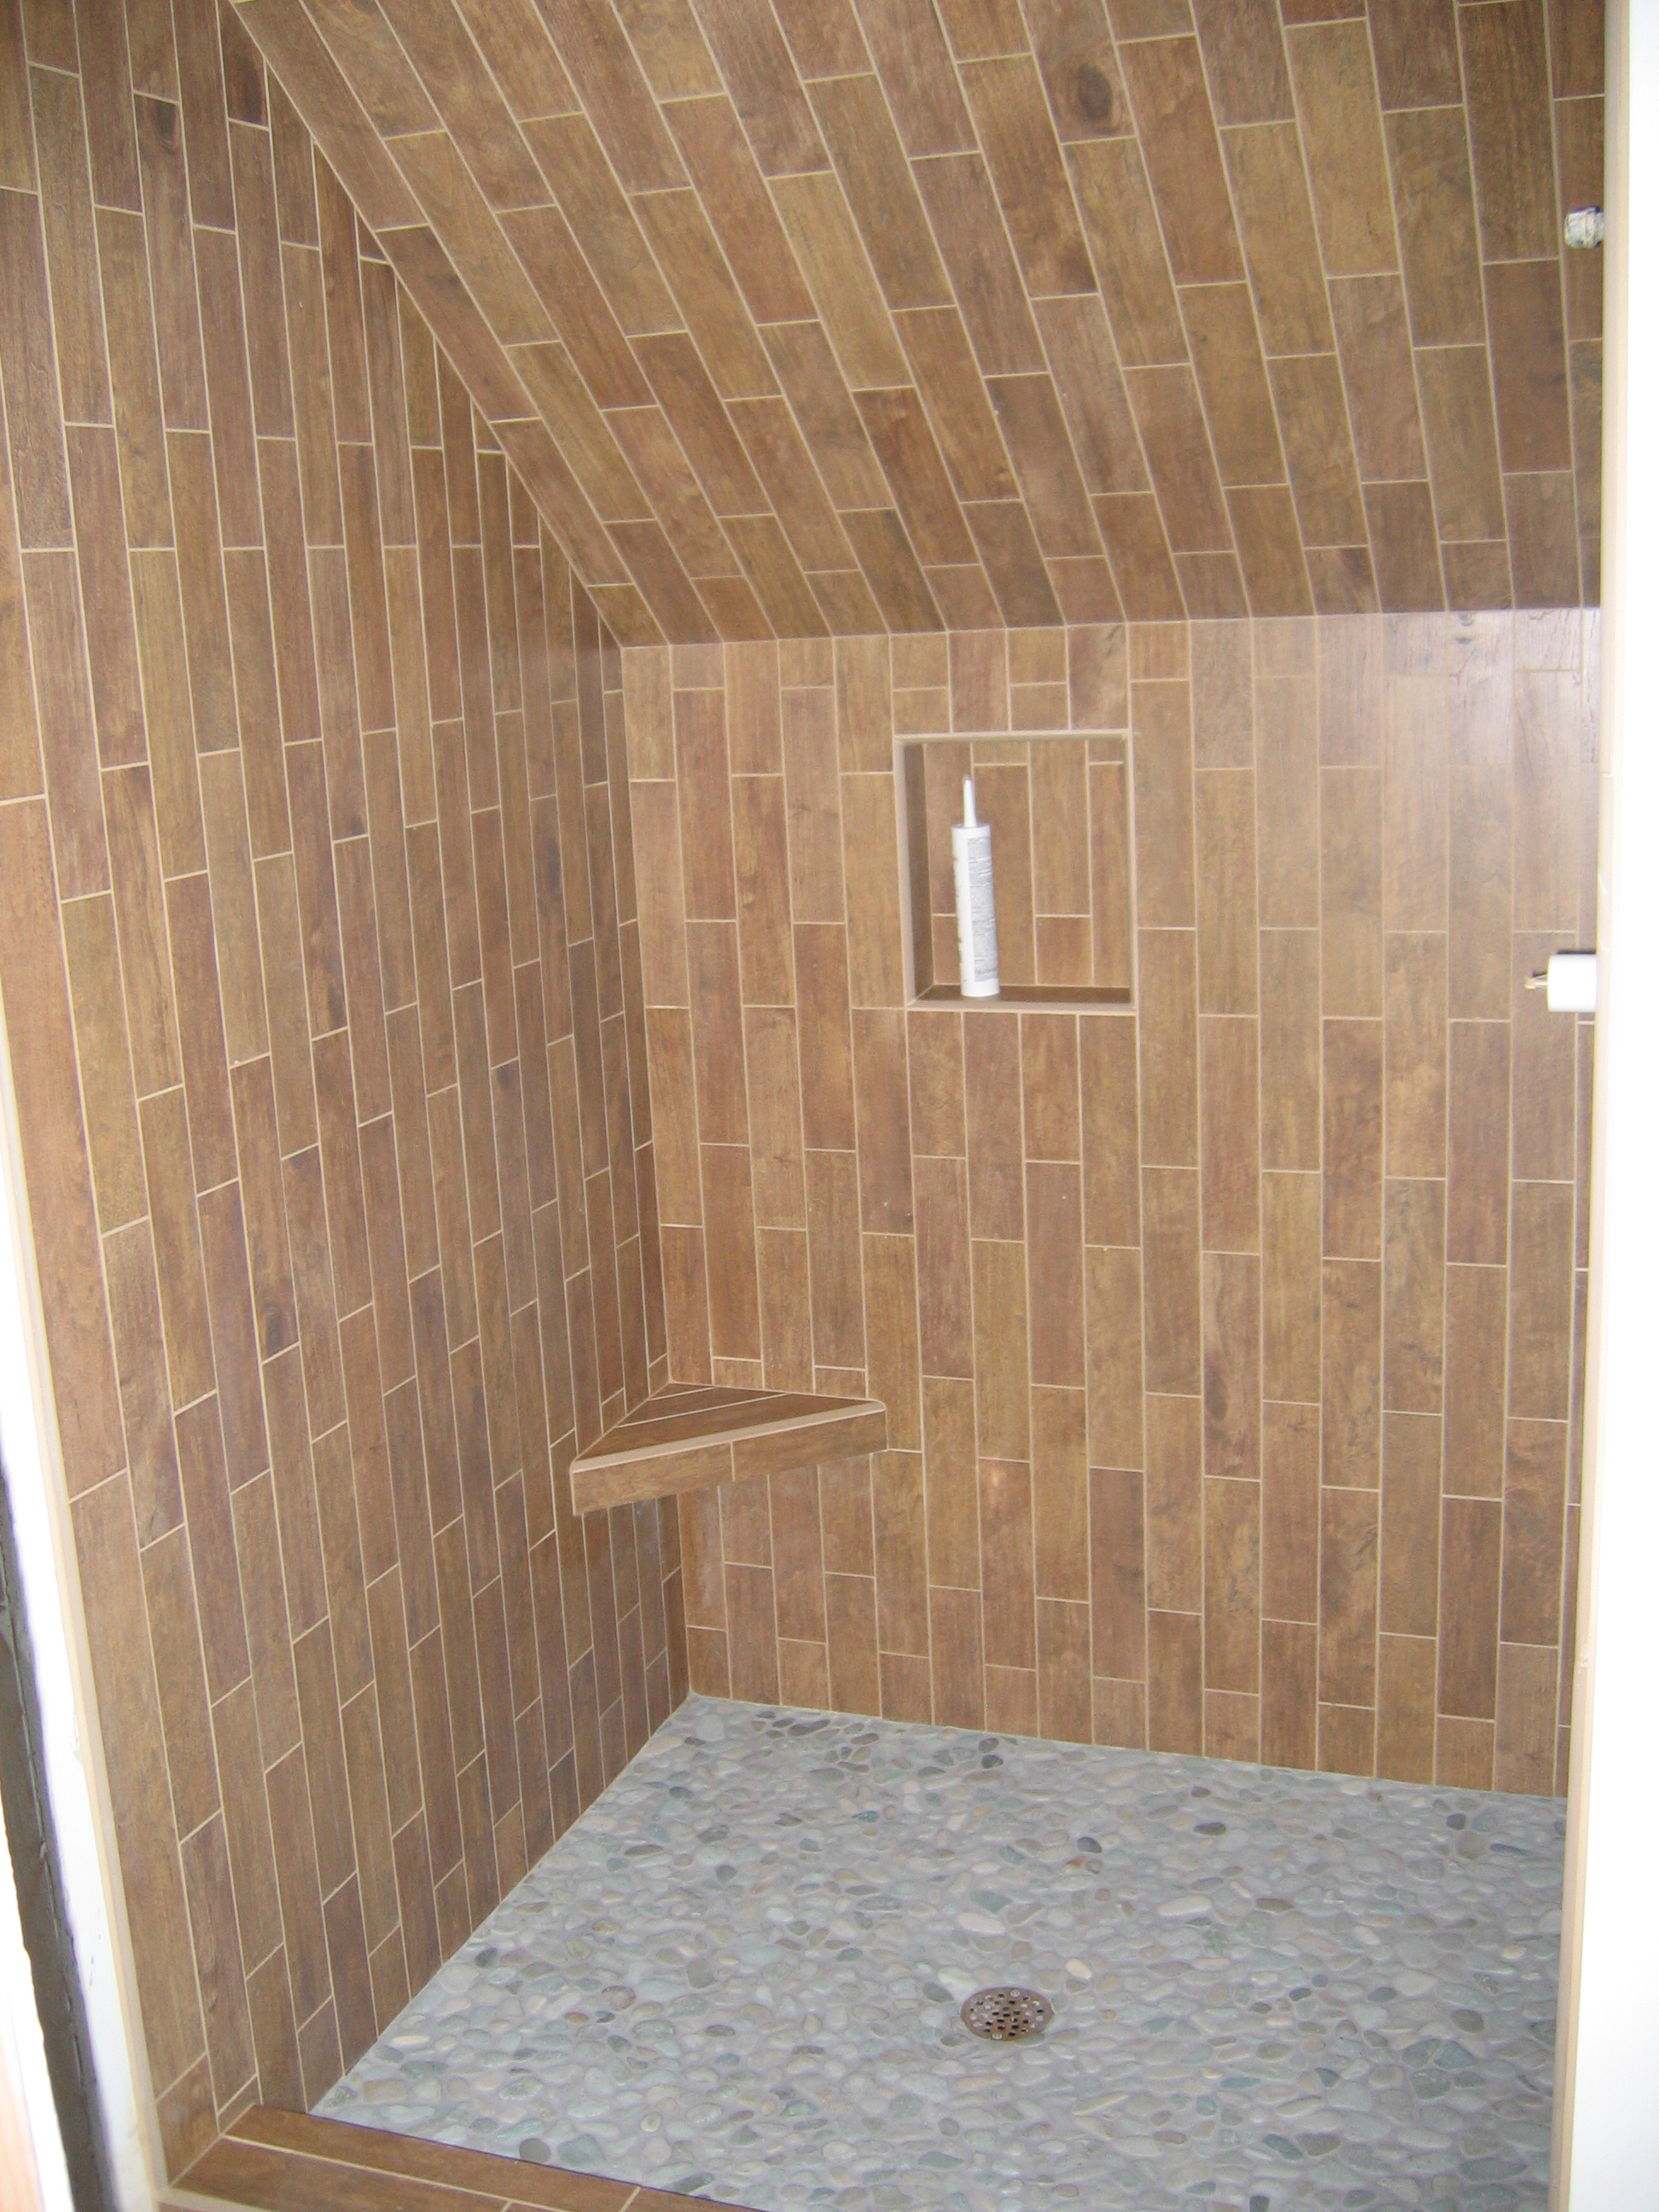 Shower Floor Tiles Which Why And How: 30 Shower Tile Ideas On A Budget